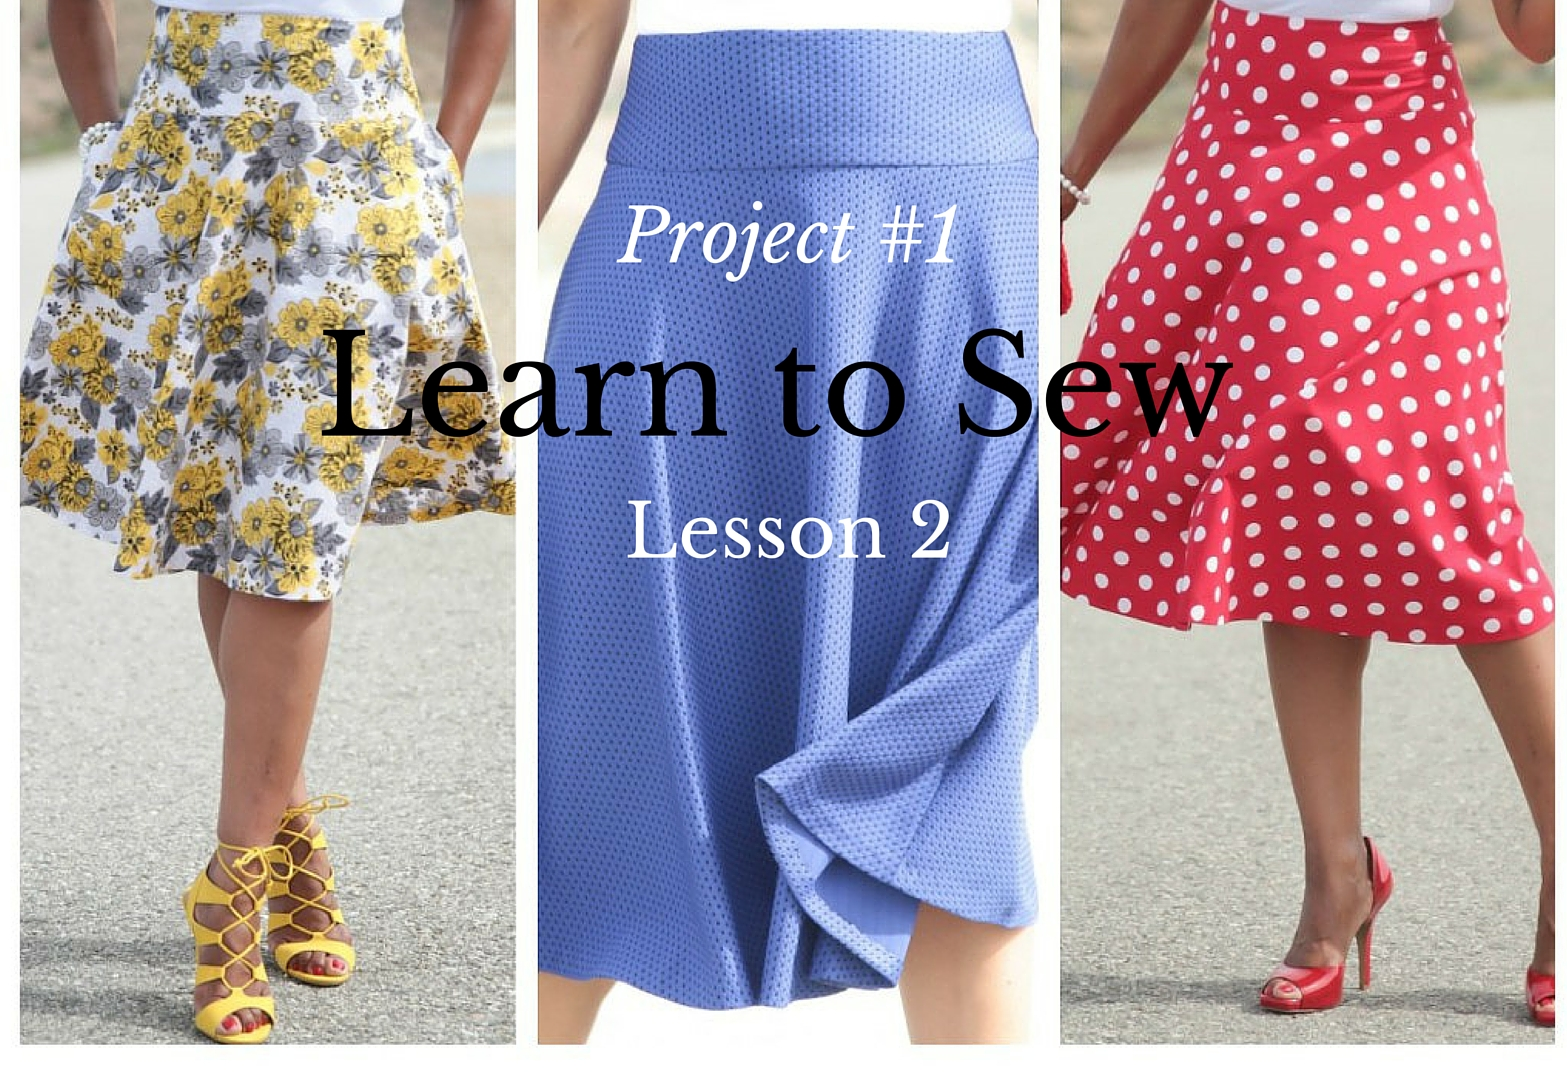 Circle skirt archives anita by design hello everyone today were moving on to lesson 2 of project 1 hopefully youve purchased your pattern fabric and notions for your circle skirt jeuxipadfo Gallery